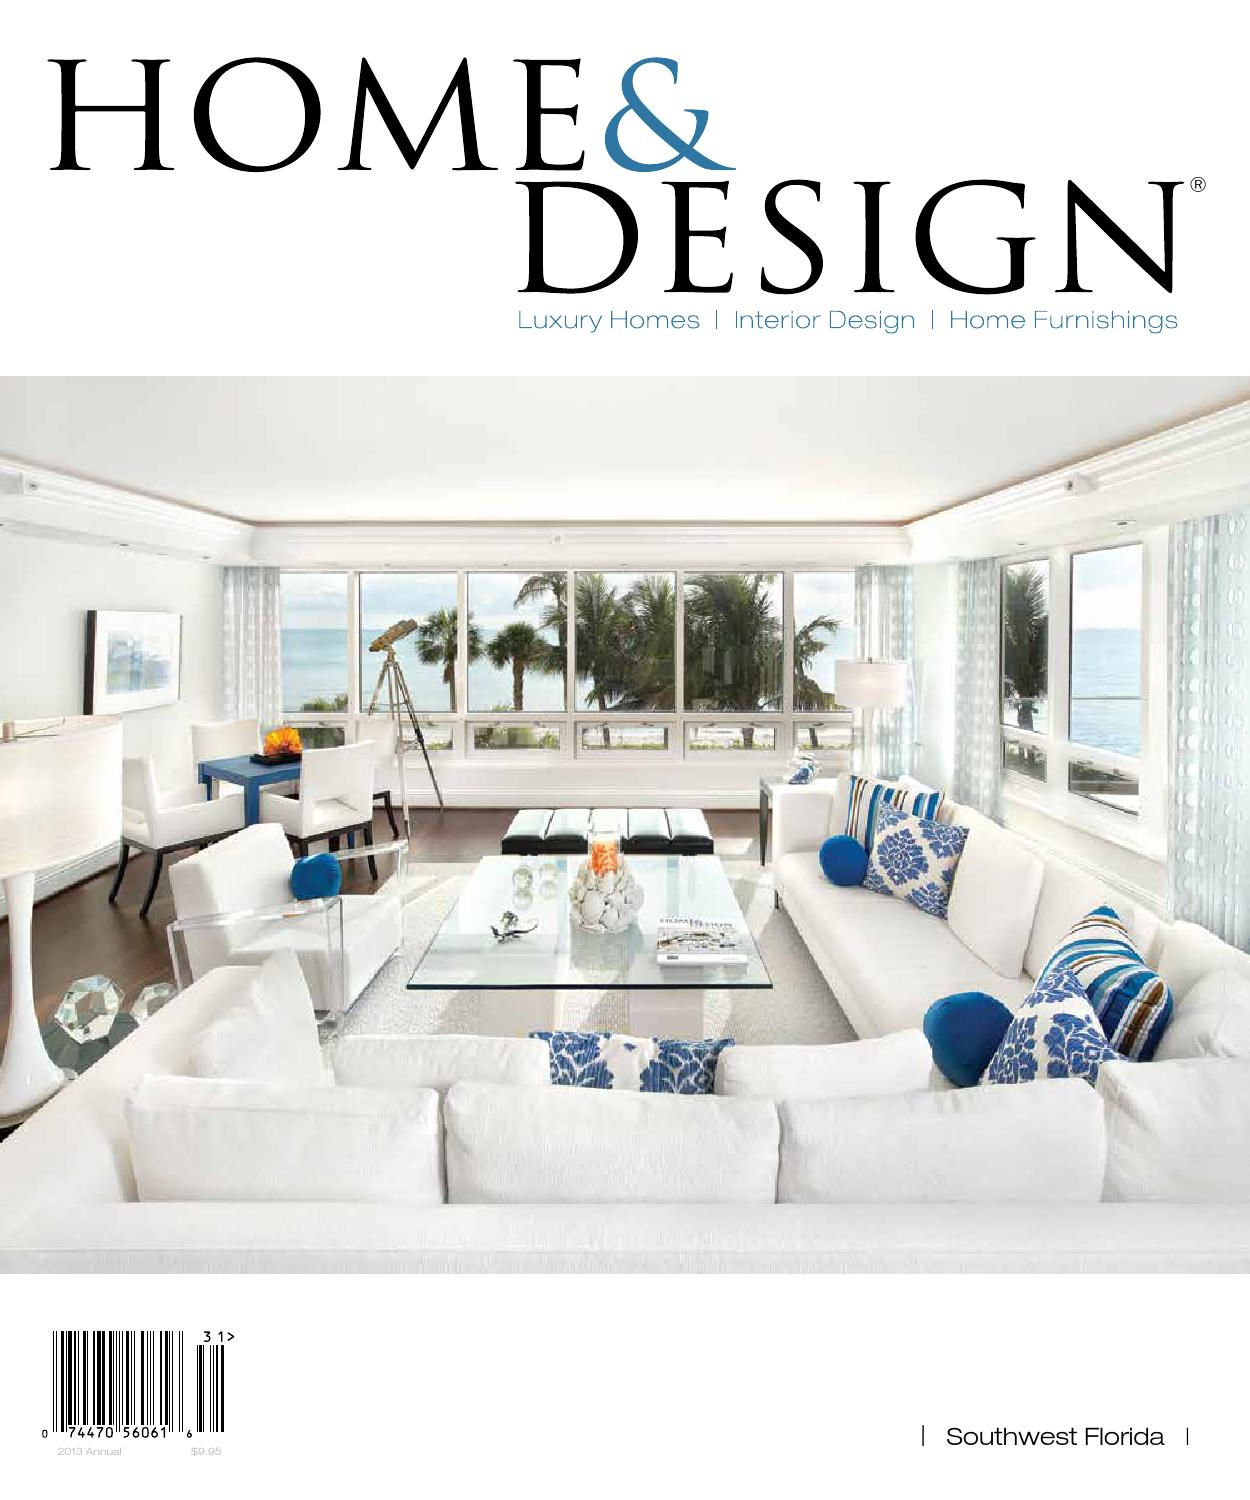 Issuu home design magazine annual resource guide for Home design resources